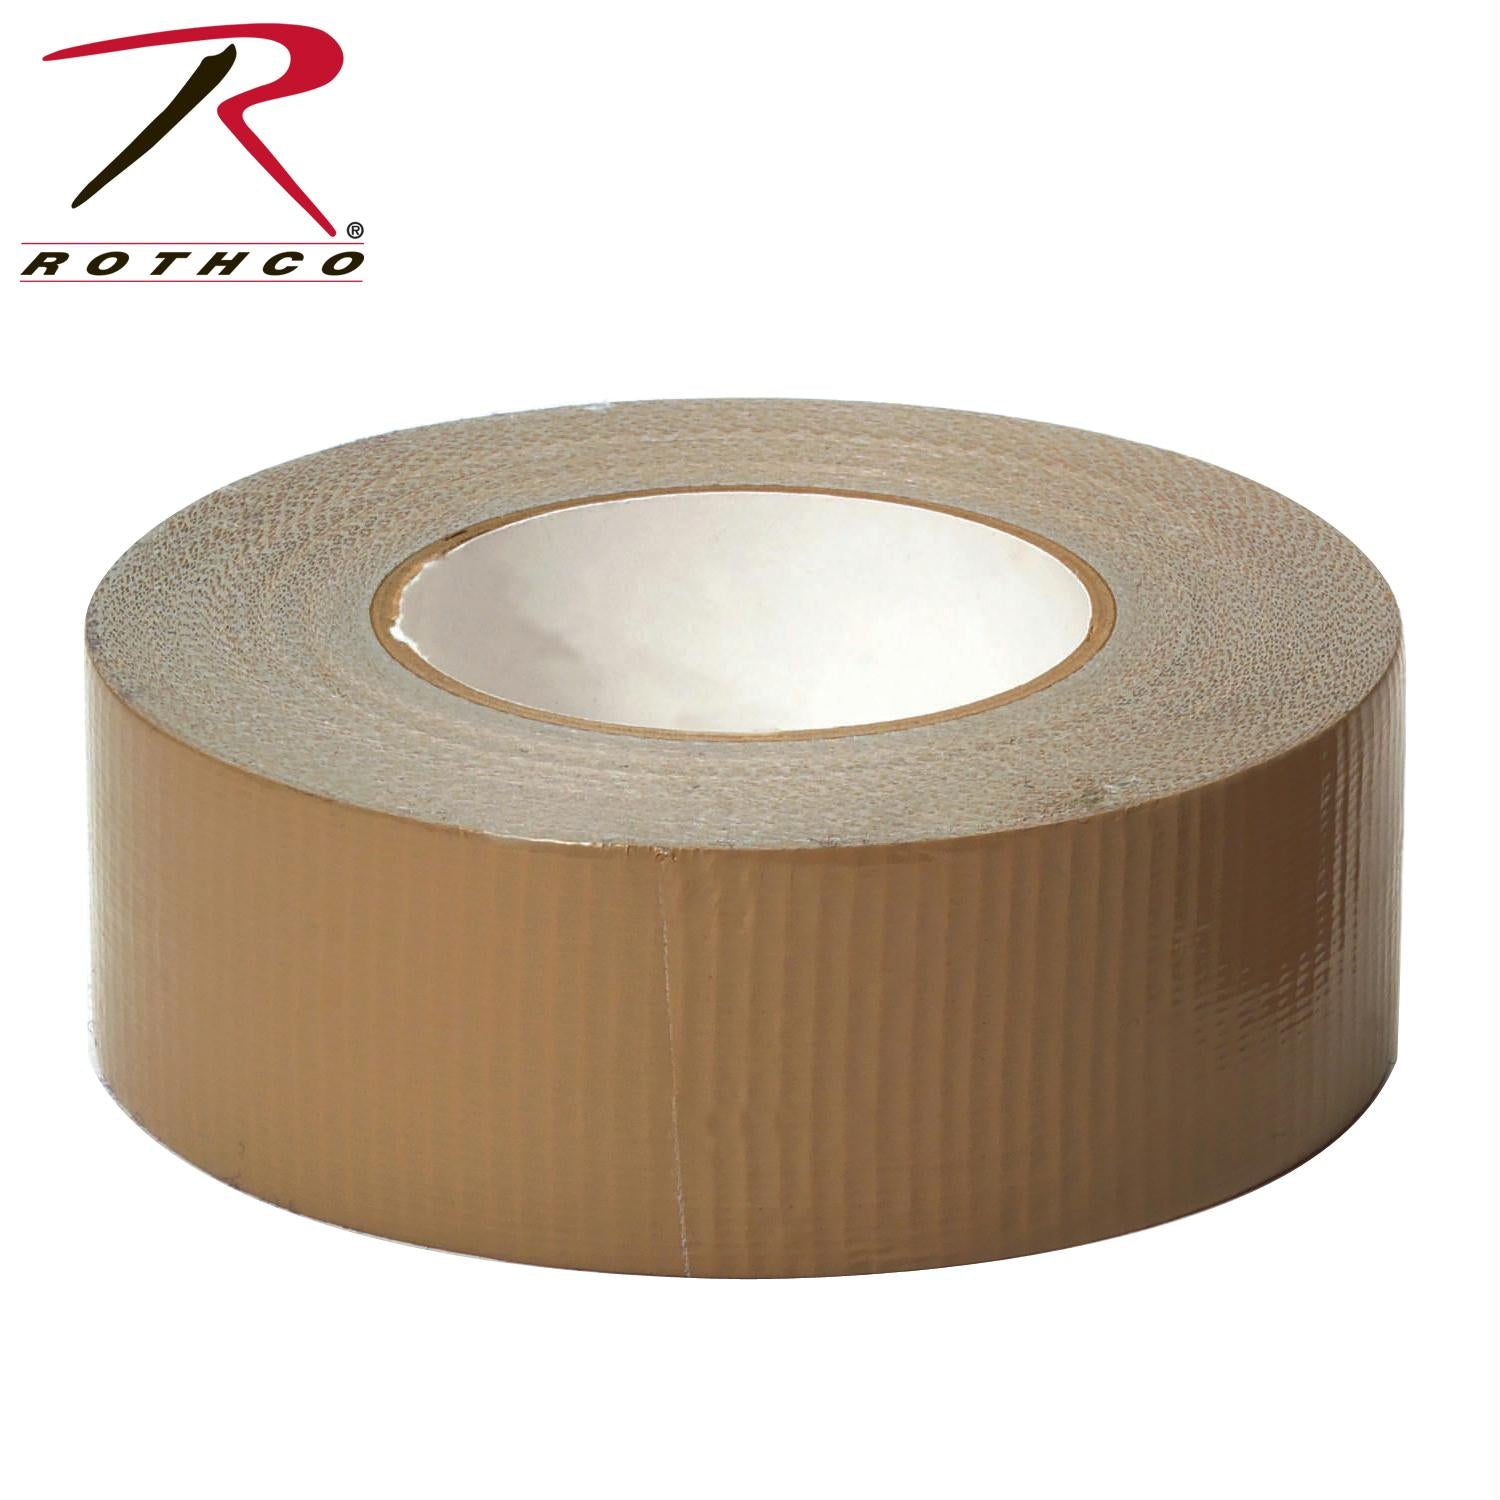 Rothco Military Duct Tape AKA 100 Mile An Hour Tape